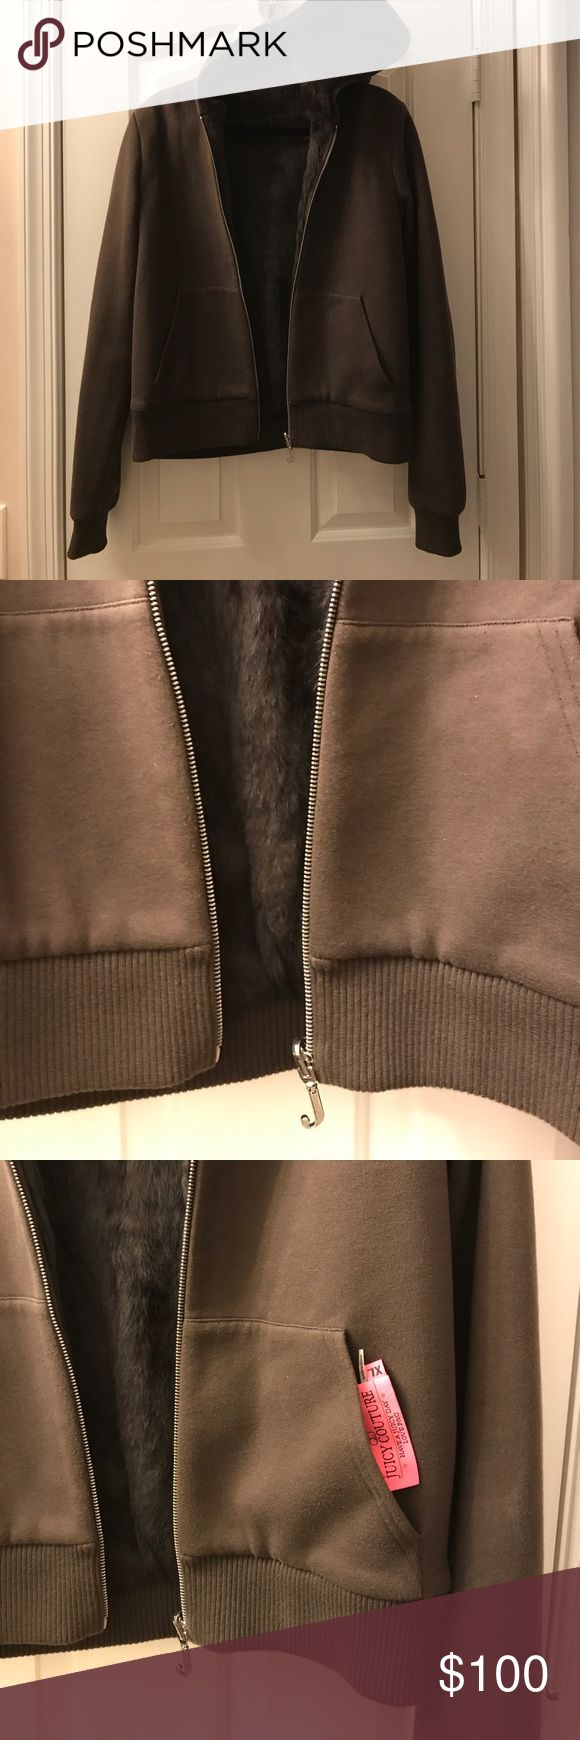 Juicy Couture reversible rabbit fur jacket XL Gorgeous and very versatile. Carefully stored juicy couture reversible rabbit fur hoodie jacket. Fur is 100 percent real rabbit fur. Jacket purchased by me at Neiman Marcus. Juicy Couture Jackets & Coats